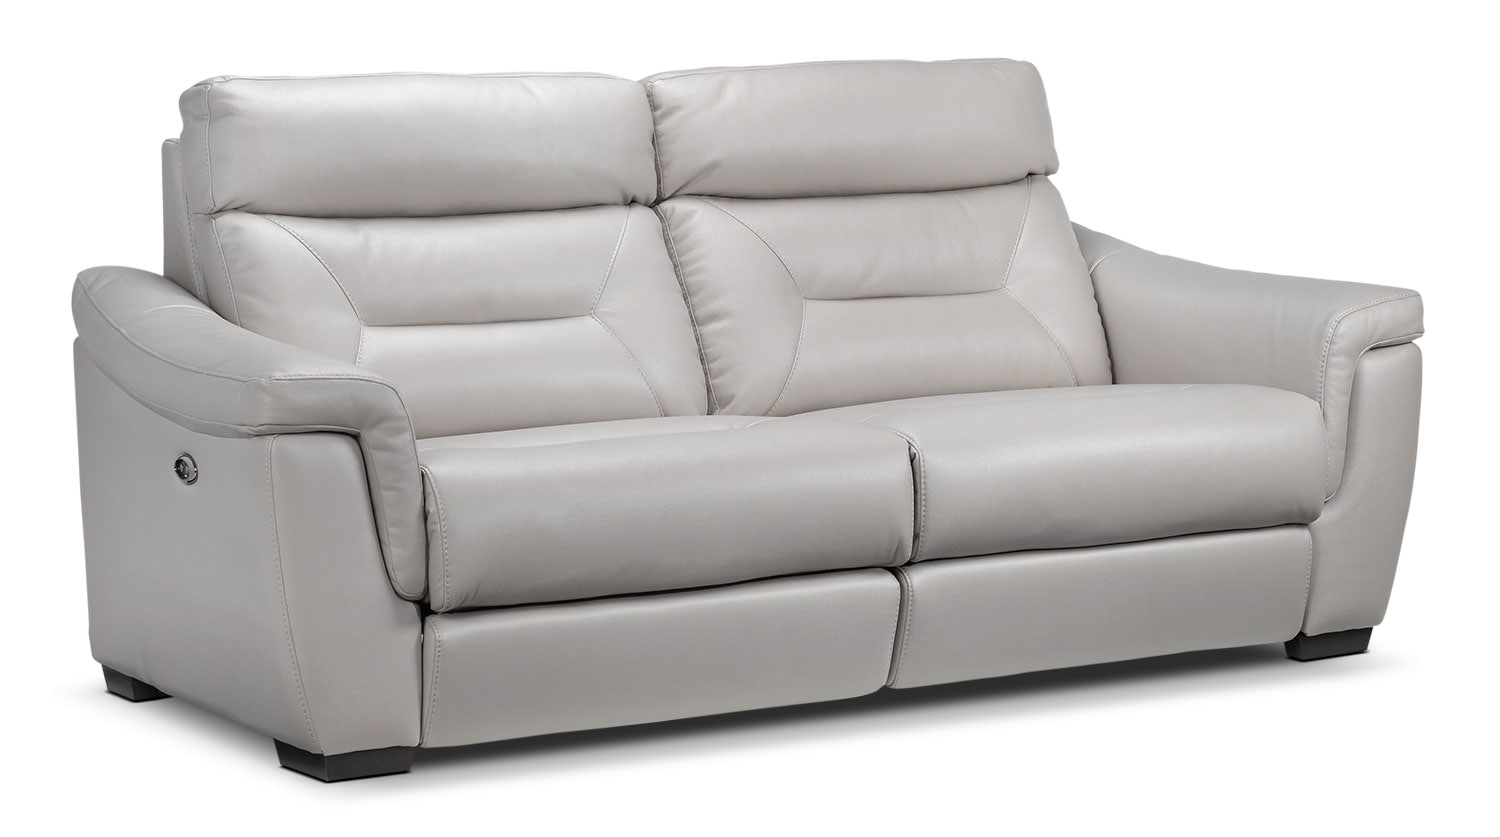 [Ralston Power Reclining Sofa - Silver-Grey]